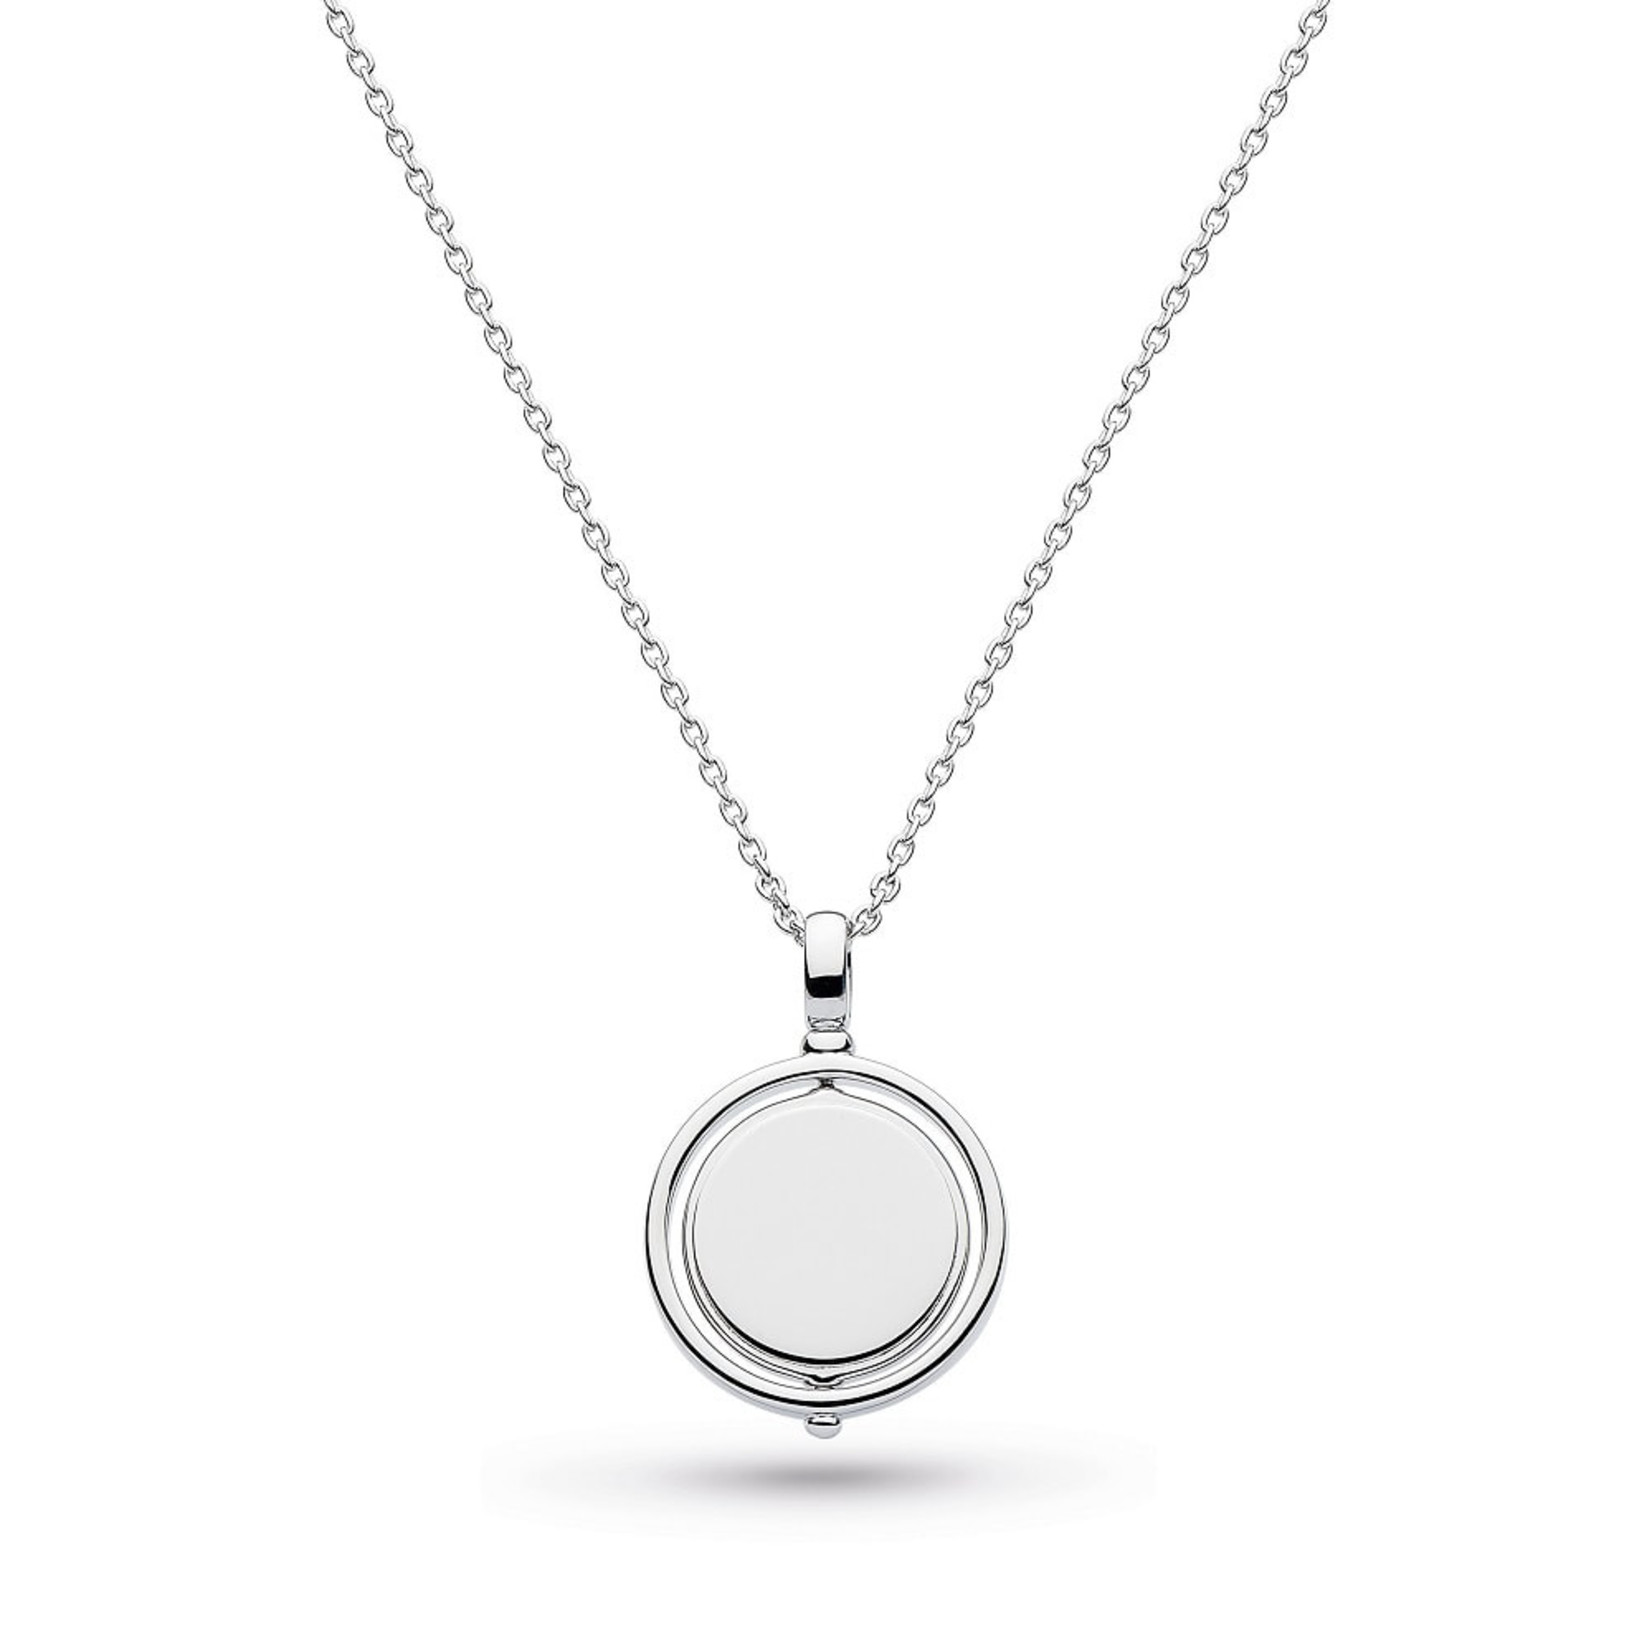 Empire Revival Round Spinner Necklace